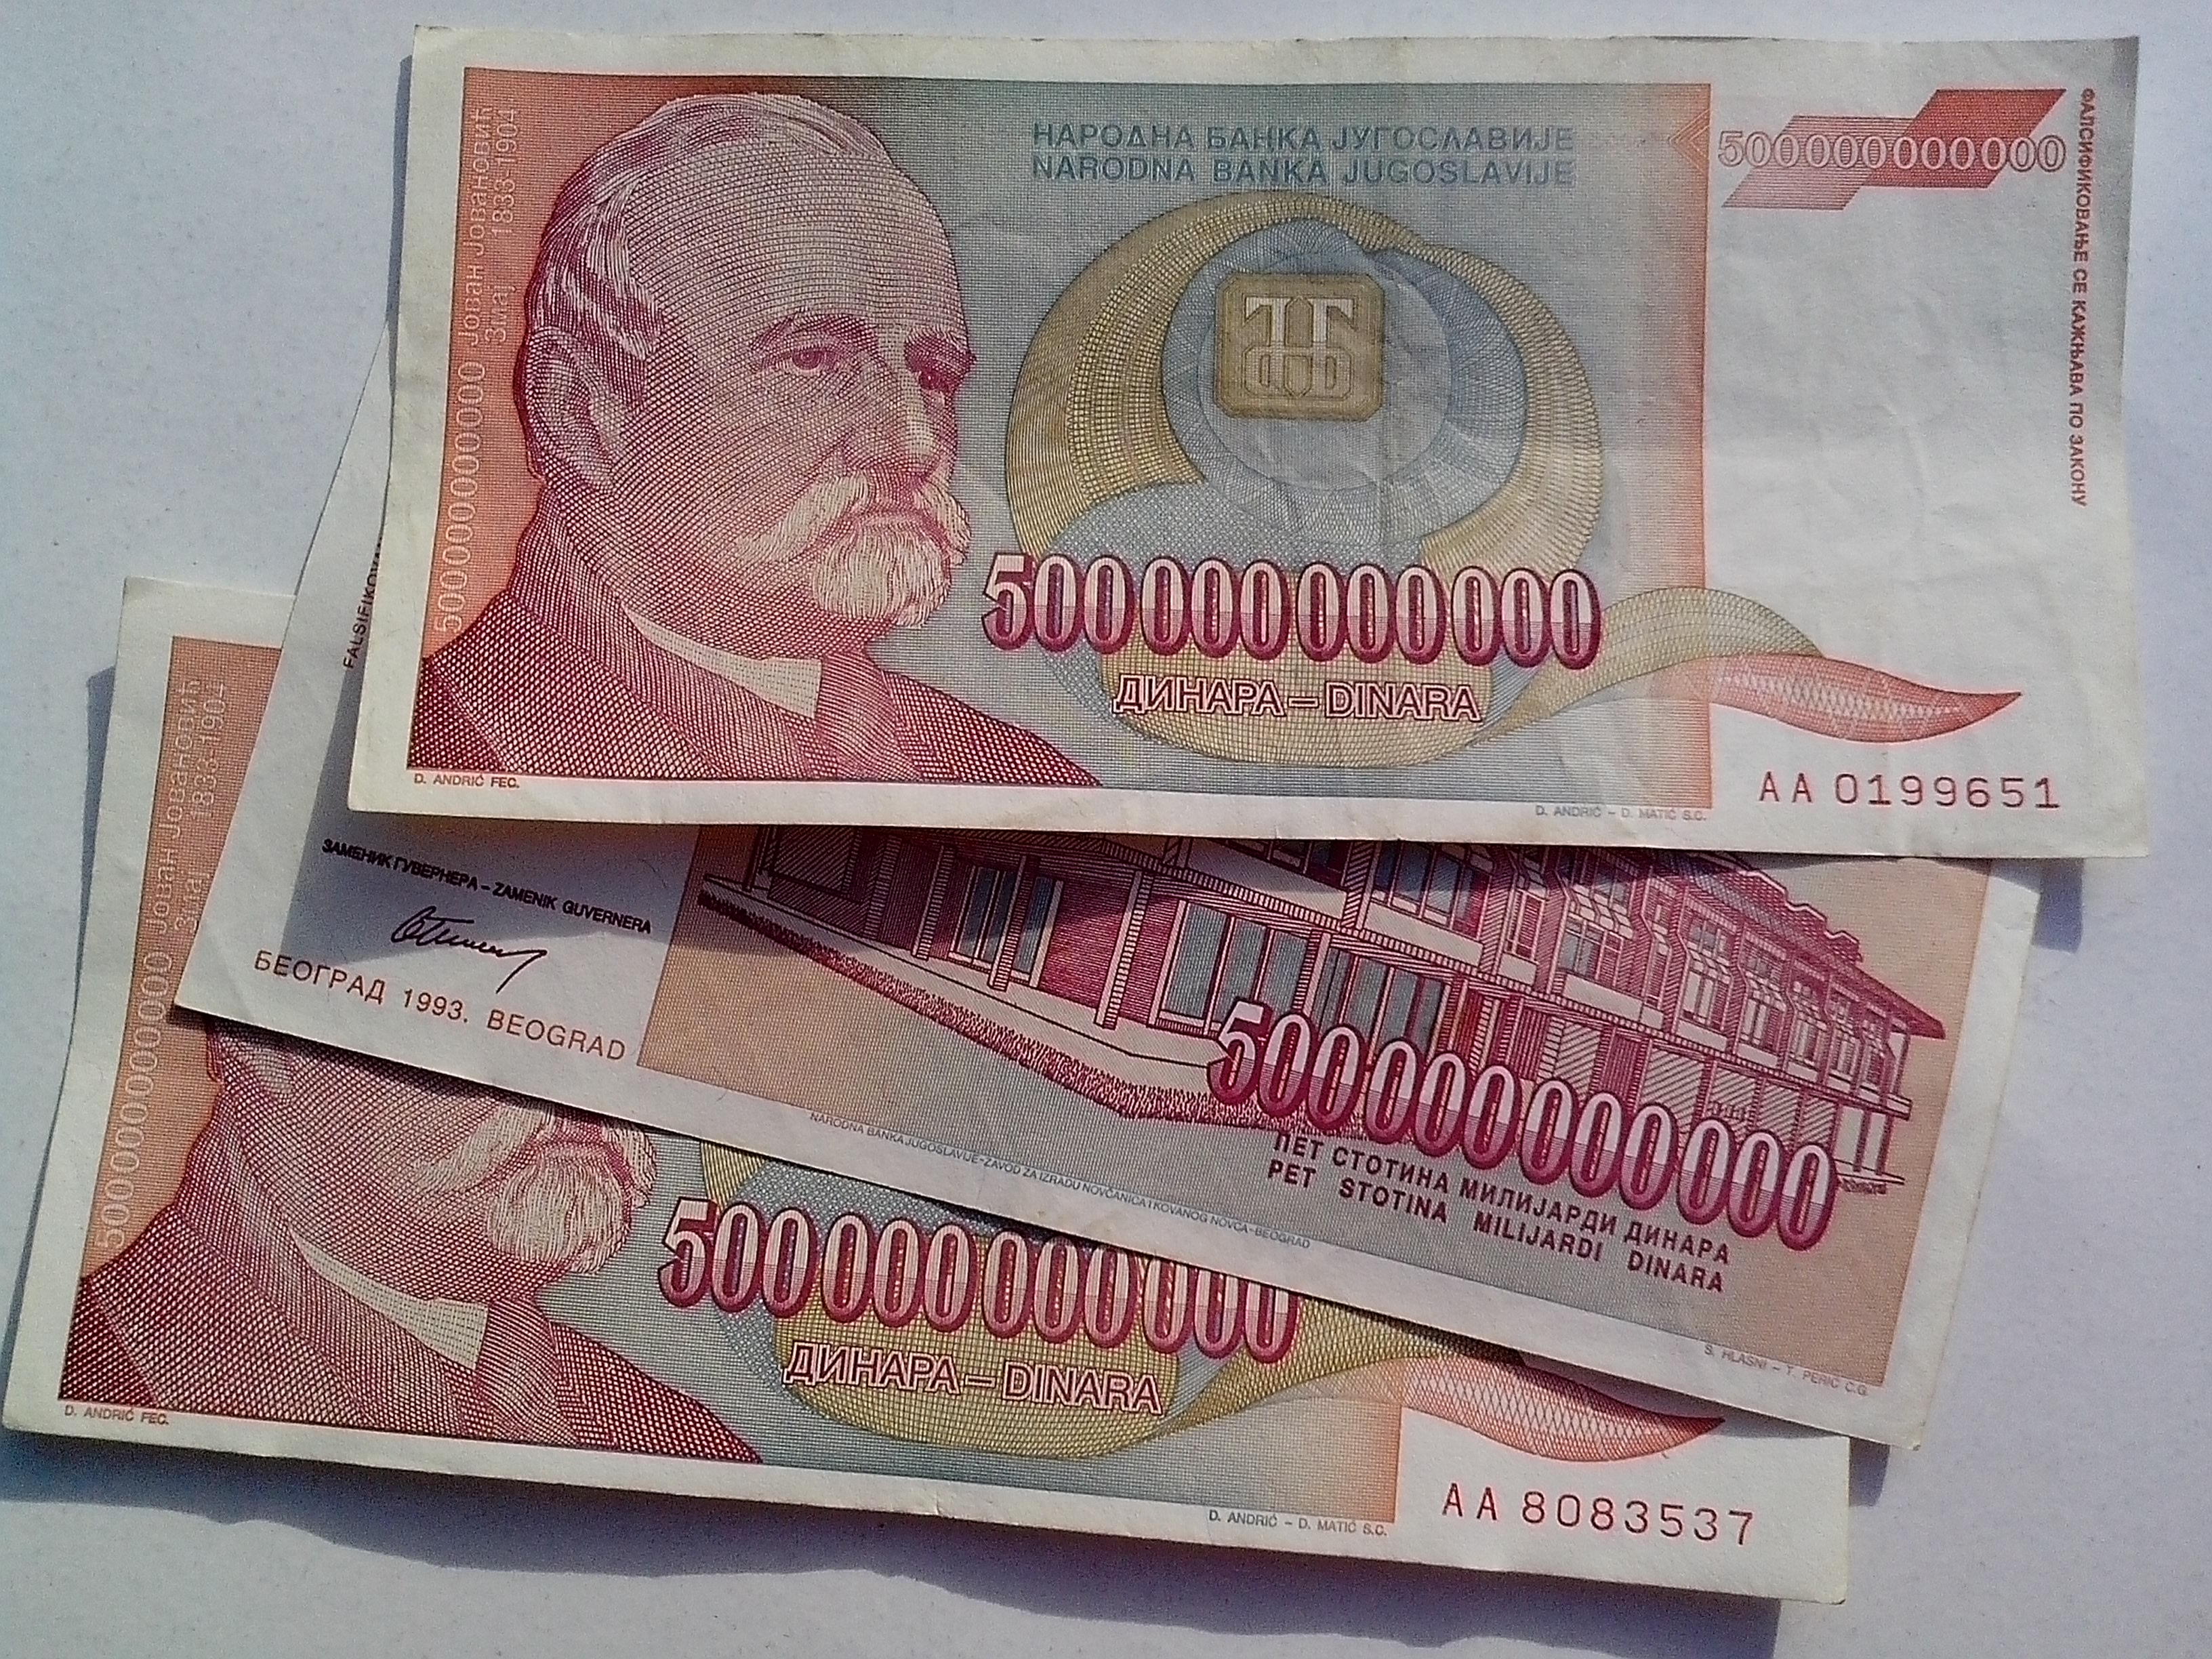 Free photograph; yugoslavia, inflation, money, banknotes, bill, cash, 500000000000, dinar, currency